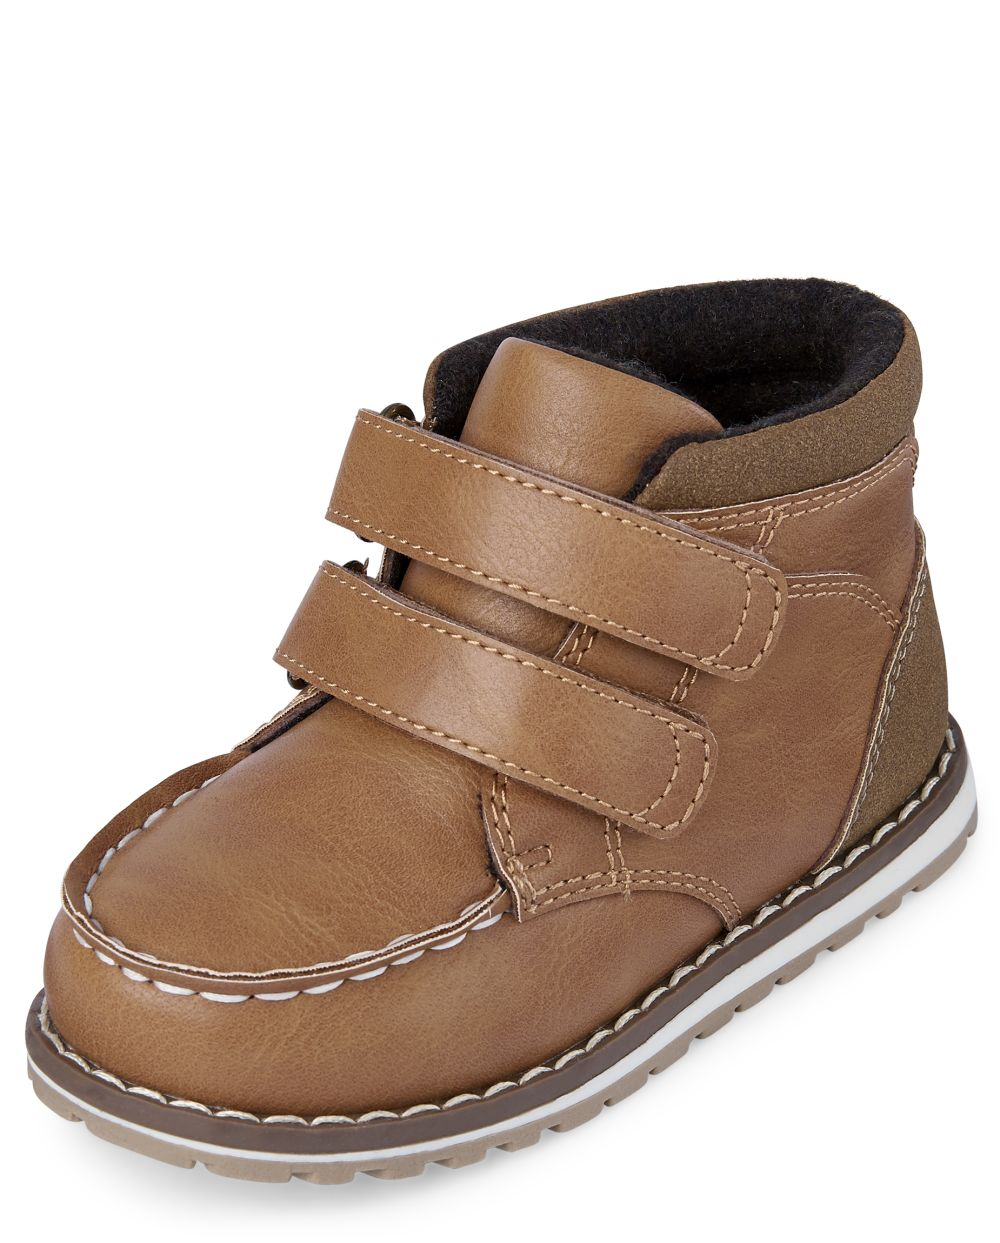 Toddler Boys Moccasin Boots